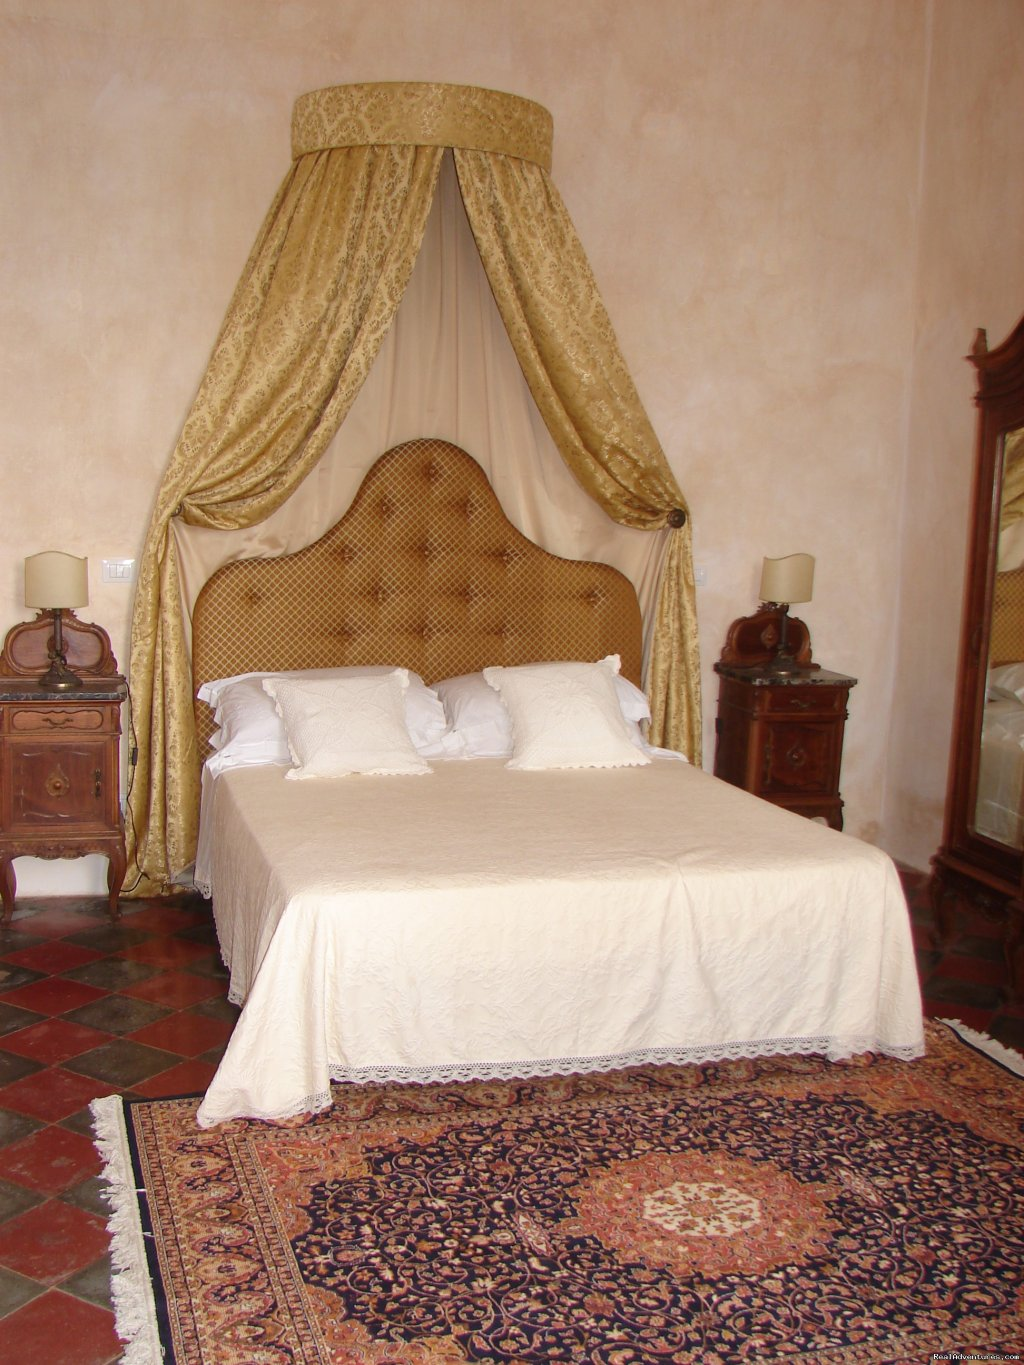 bedroom | Image #11/20 | Romantic hideaway at Villa Magnolia Italy